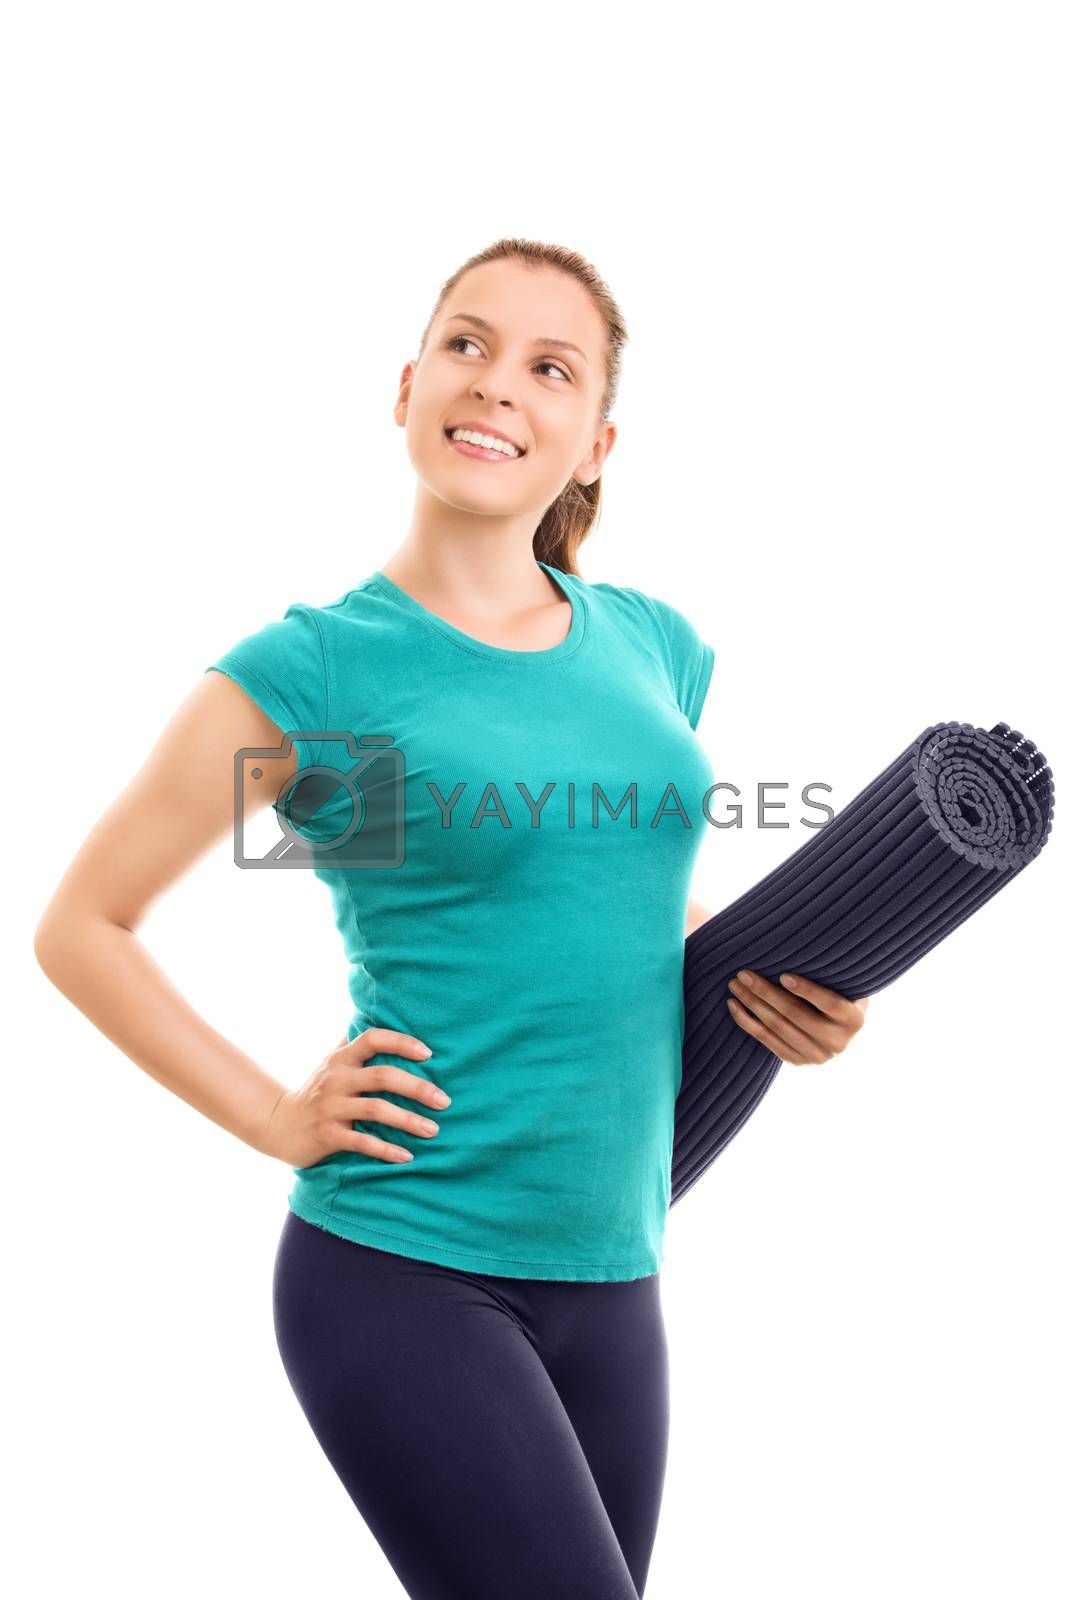 Going out for a workout. Beautiful young girl holding an exercise mat, isolated on white background.